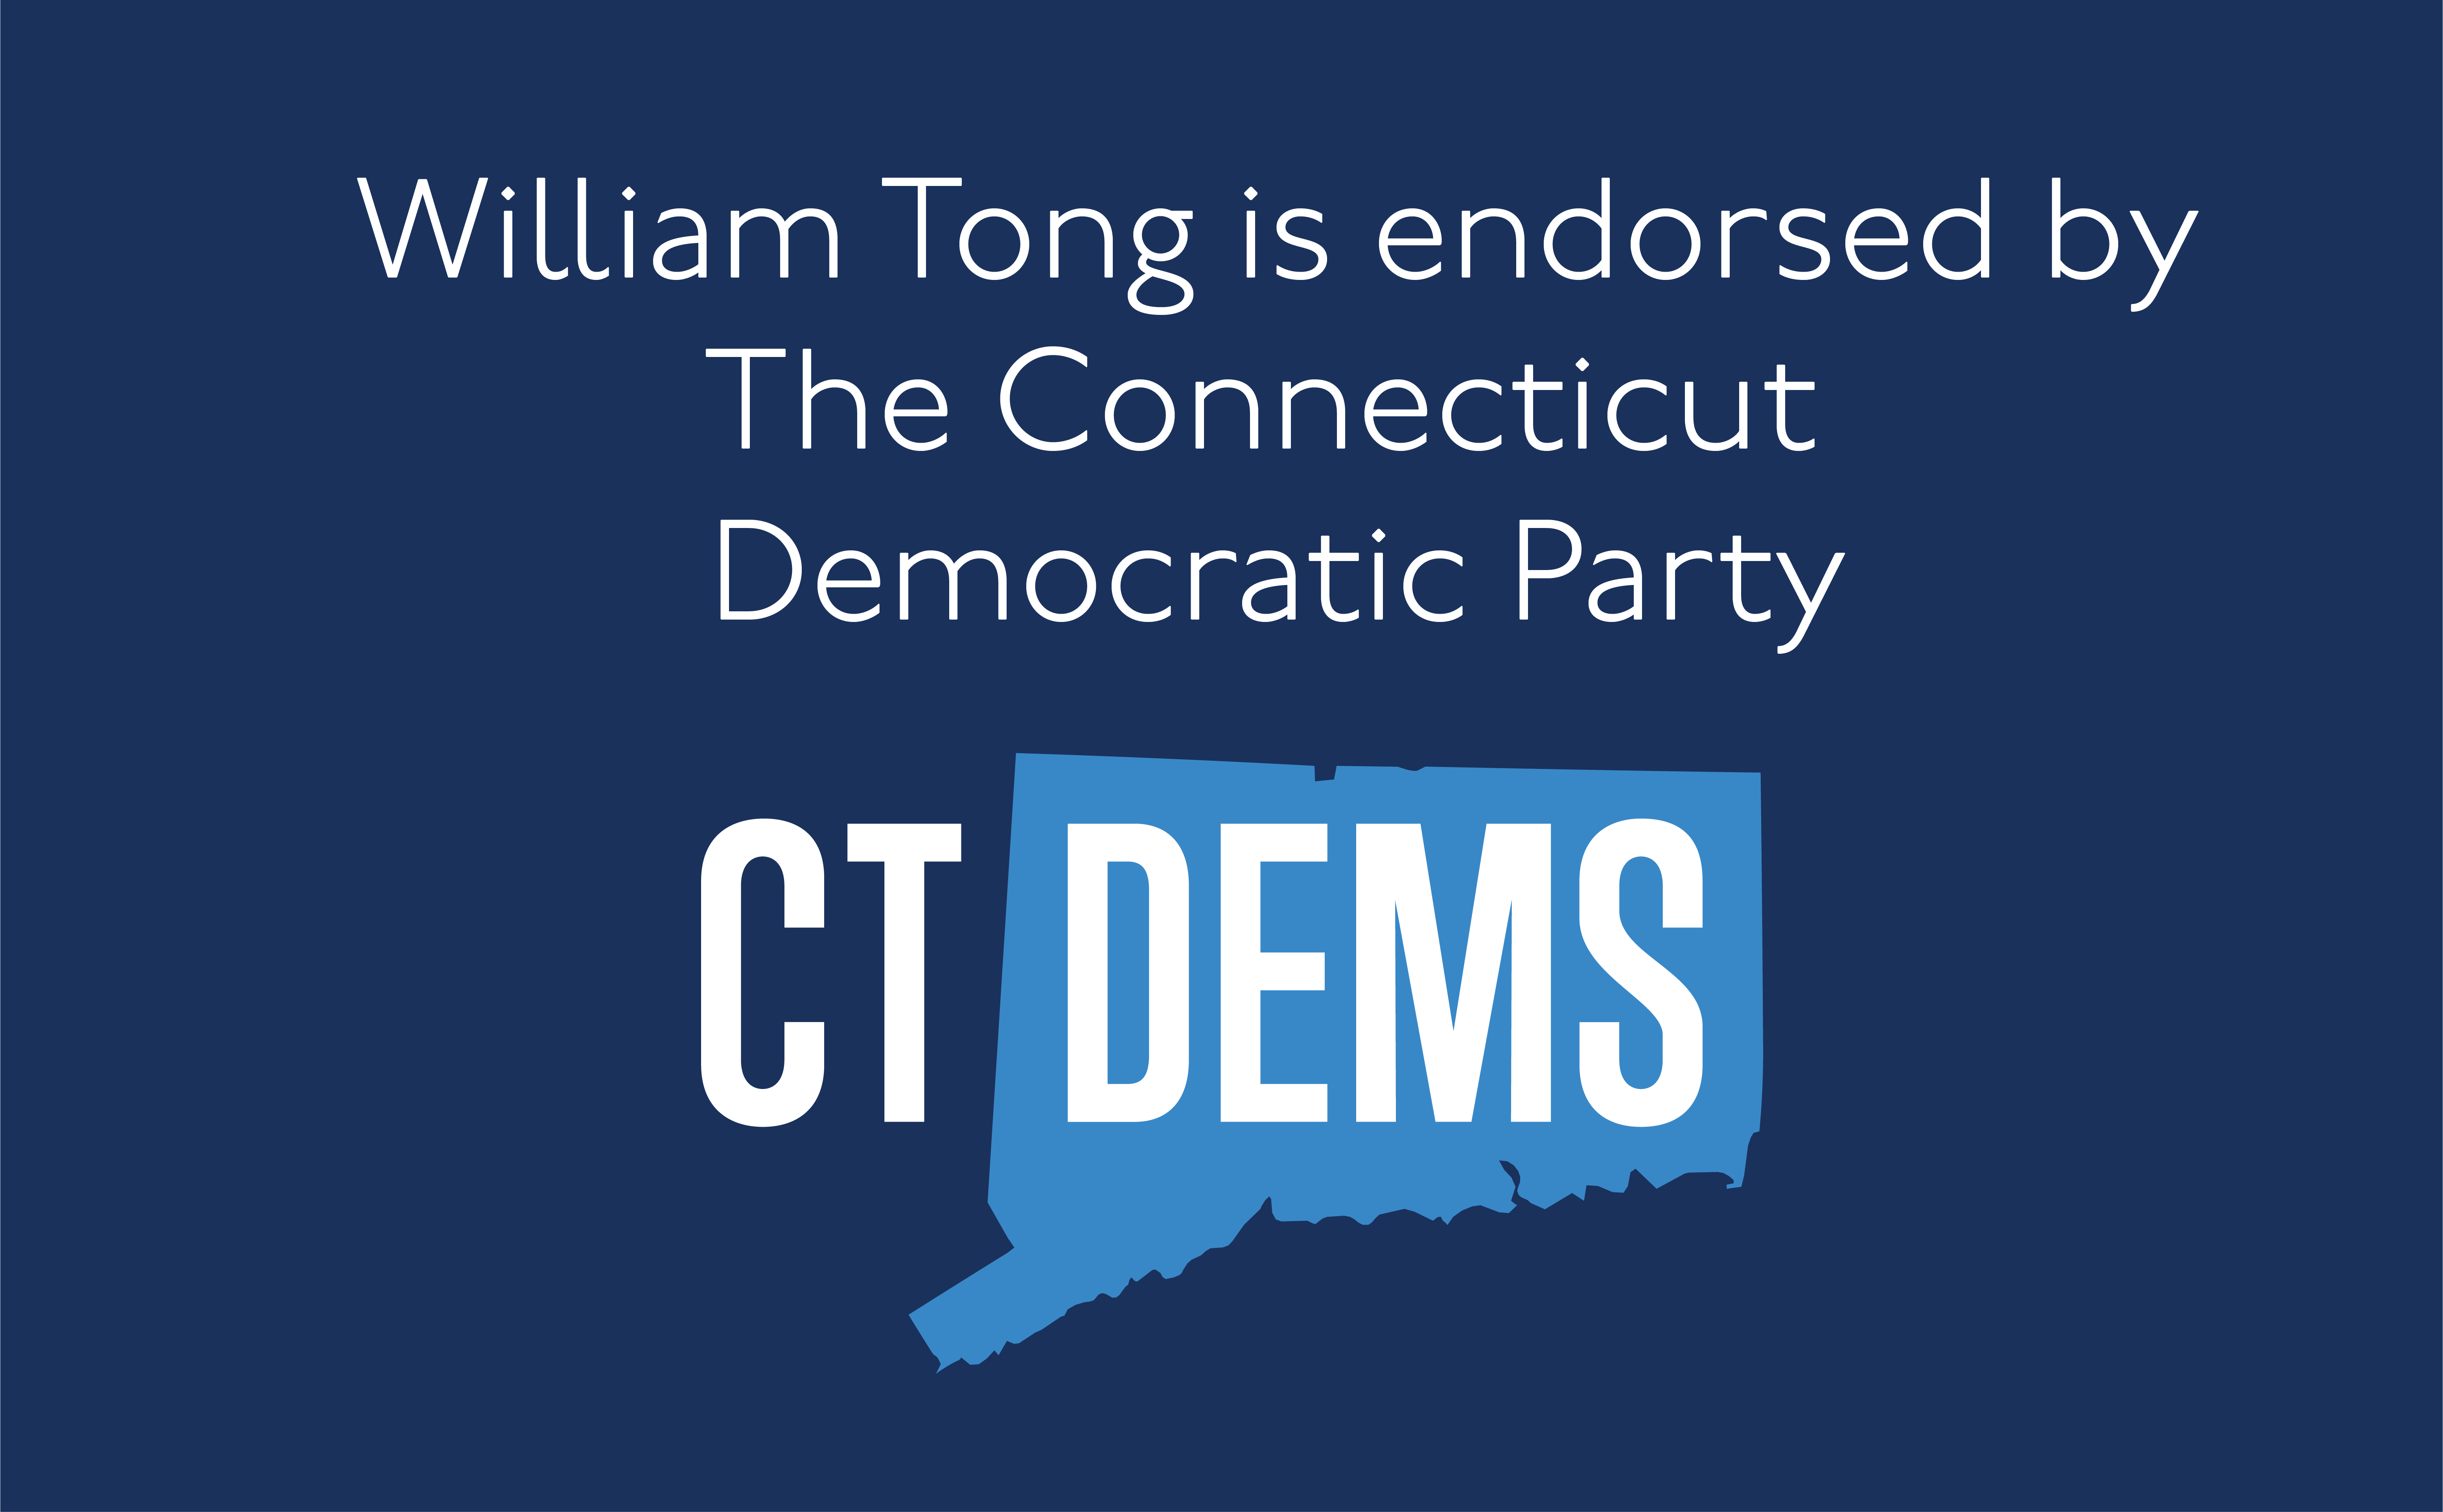 William Tong is endorsed by The Connecticut Democratic Party